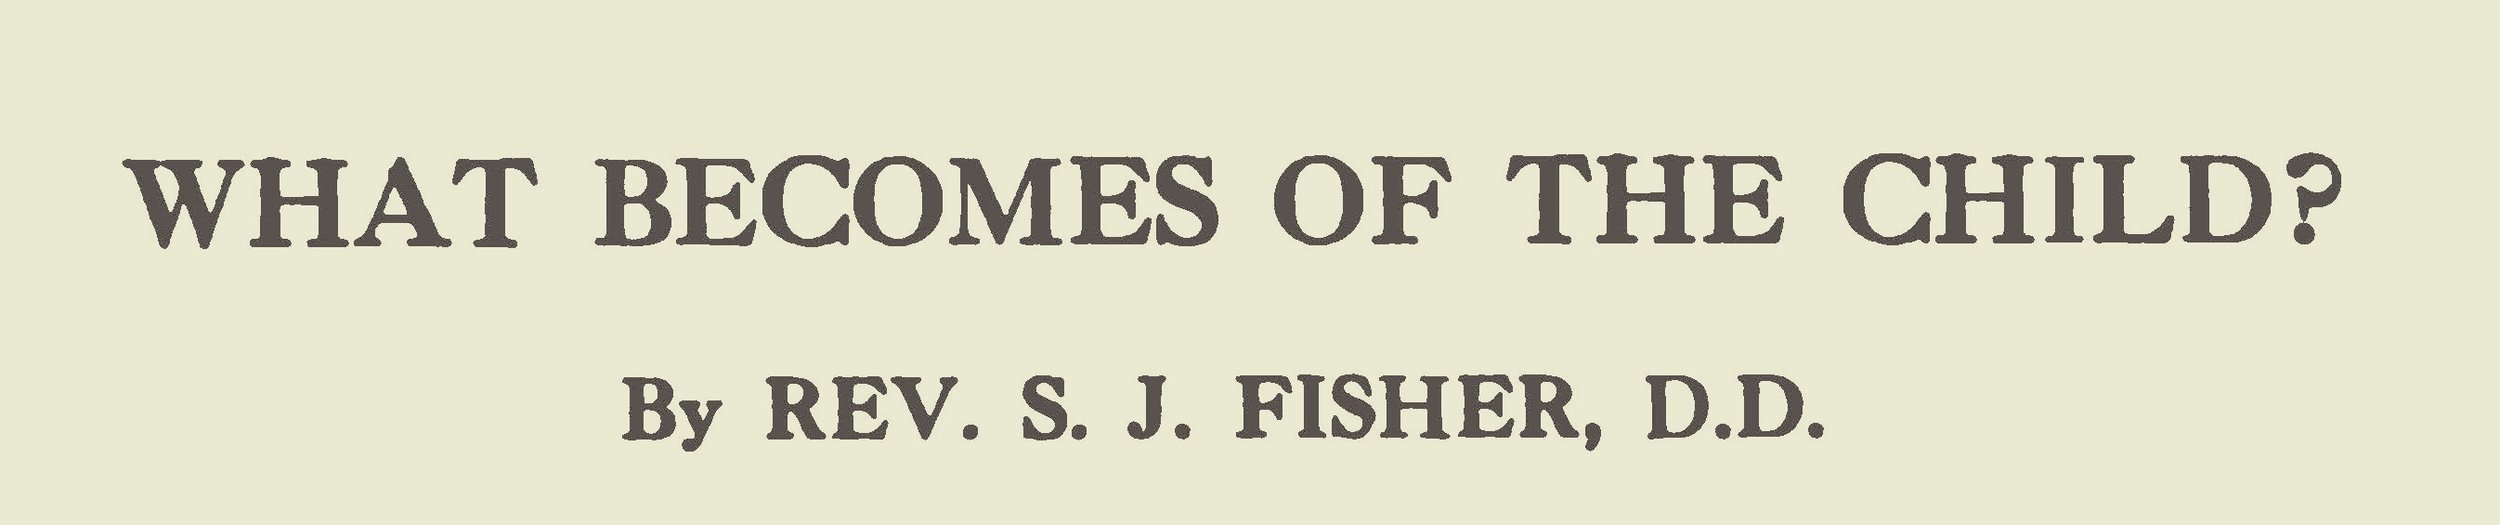 Fisher, Samuel Jackson, What Becomes of the Child Title Page.jpg